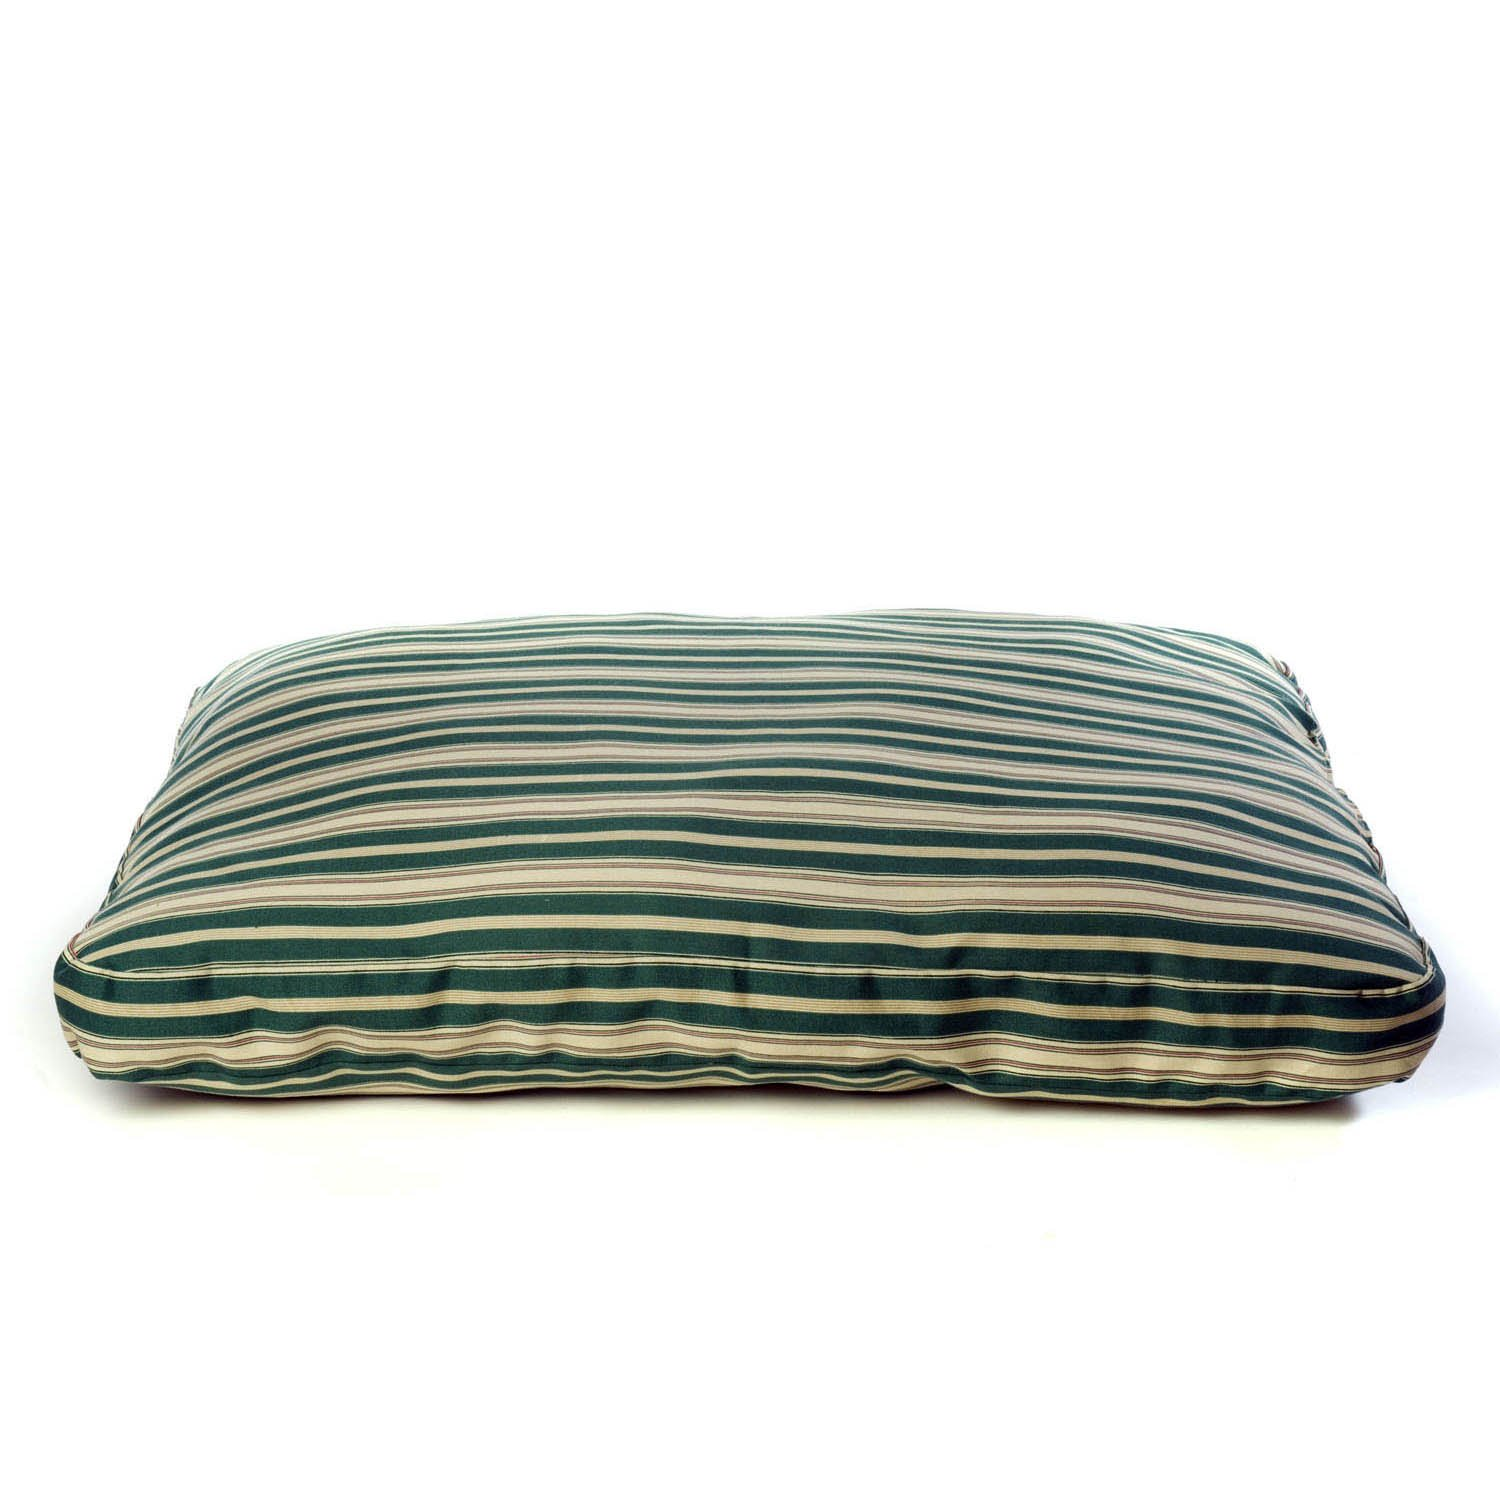 Carolina Pet Company Indoor Outdoor Jamison Green Striped Dog Bed 42 L X 30 W X 4 H Medium